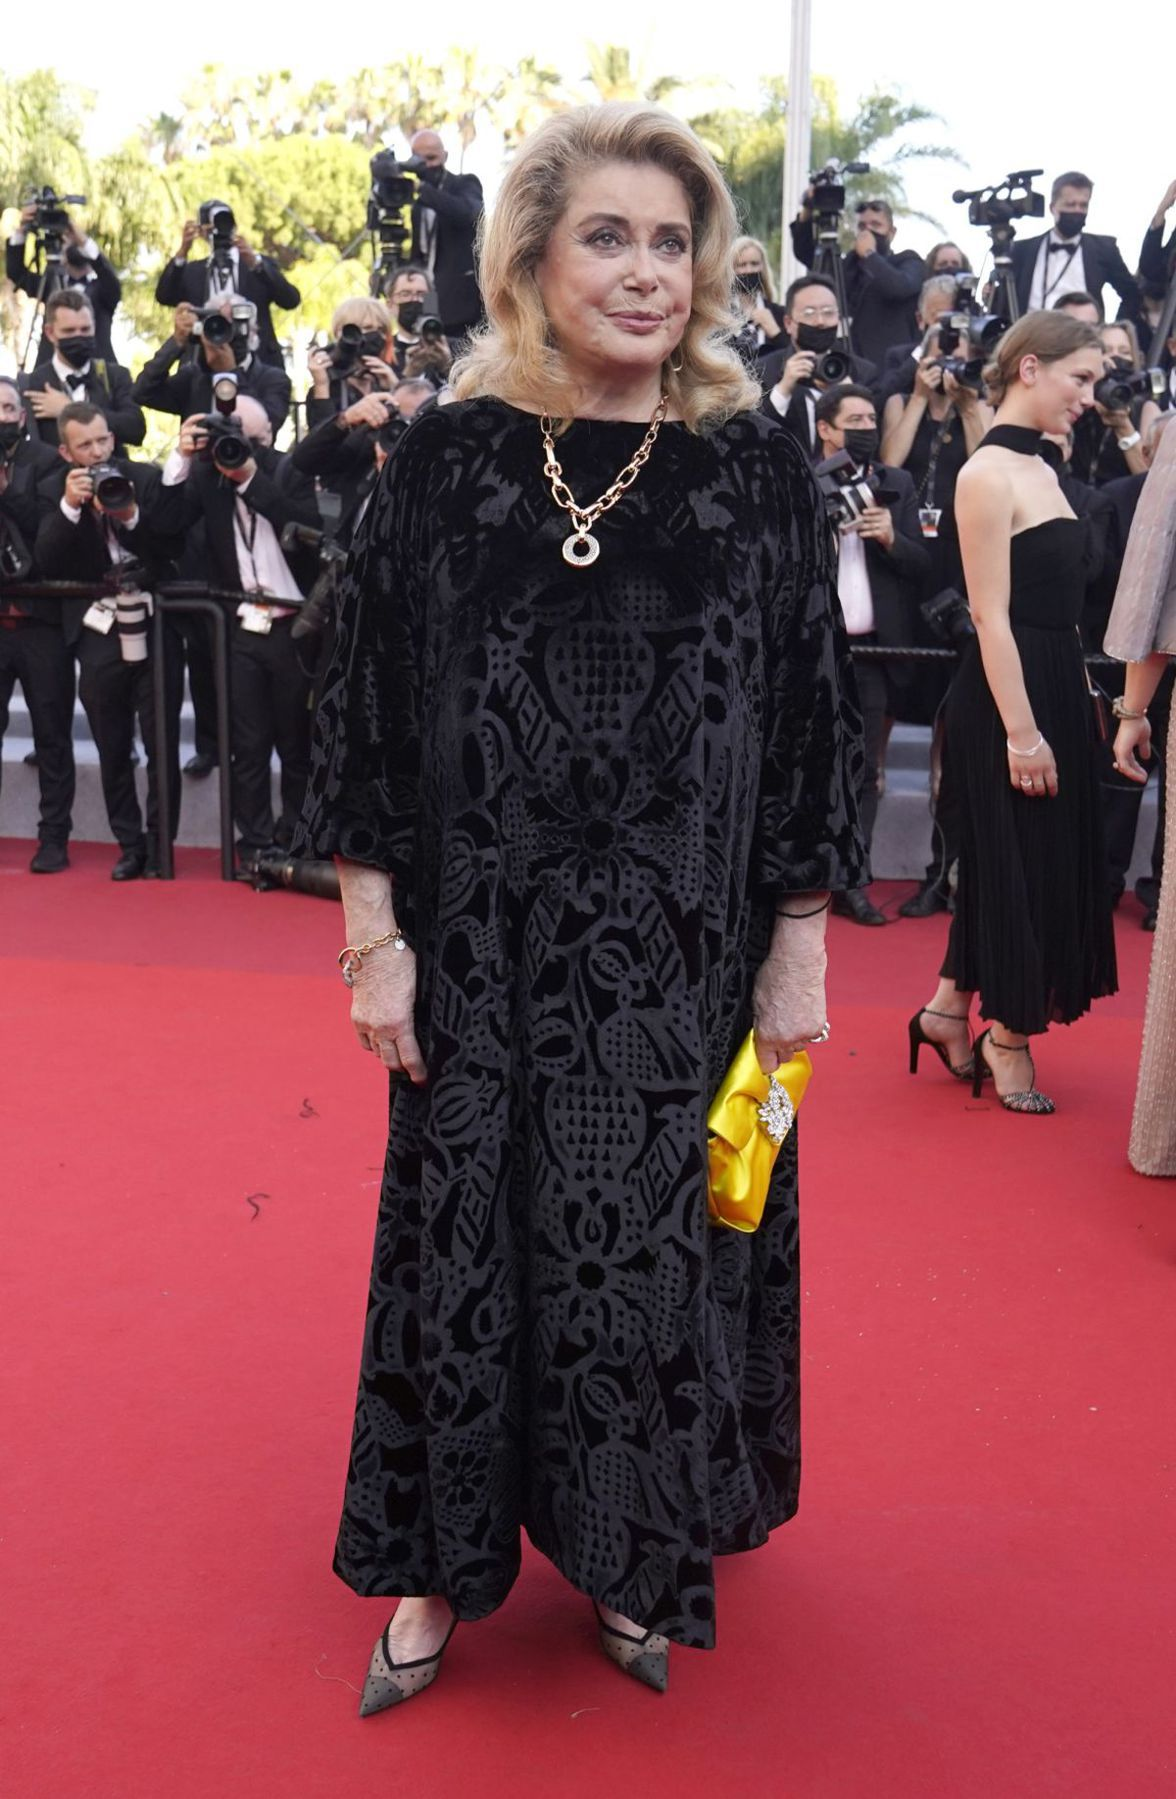 France Cannes 2021 Peaceful Red Carpet